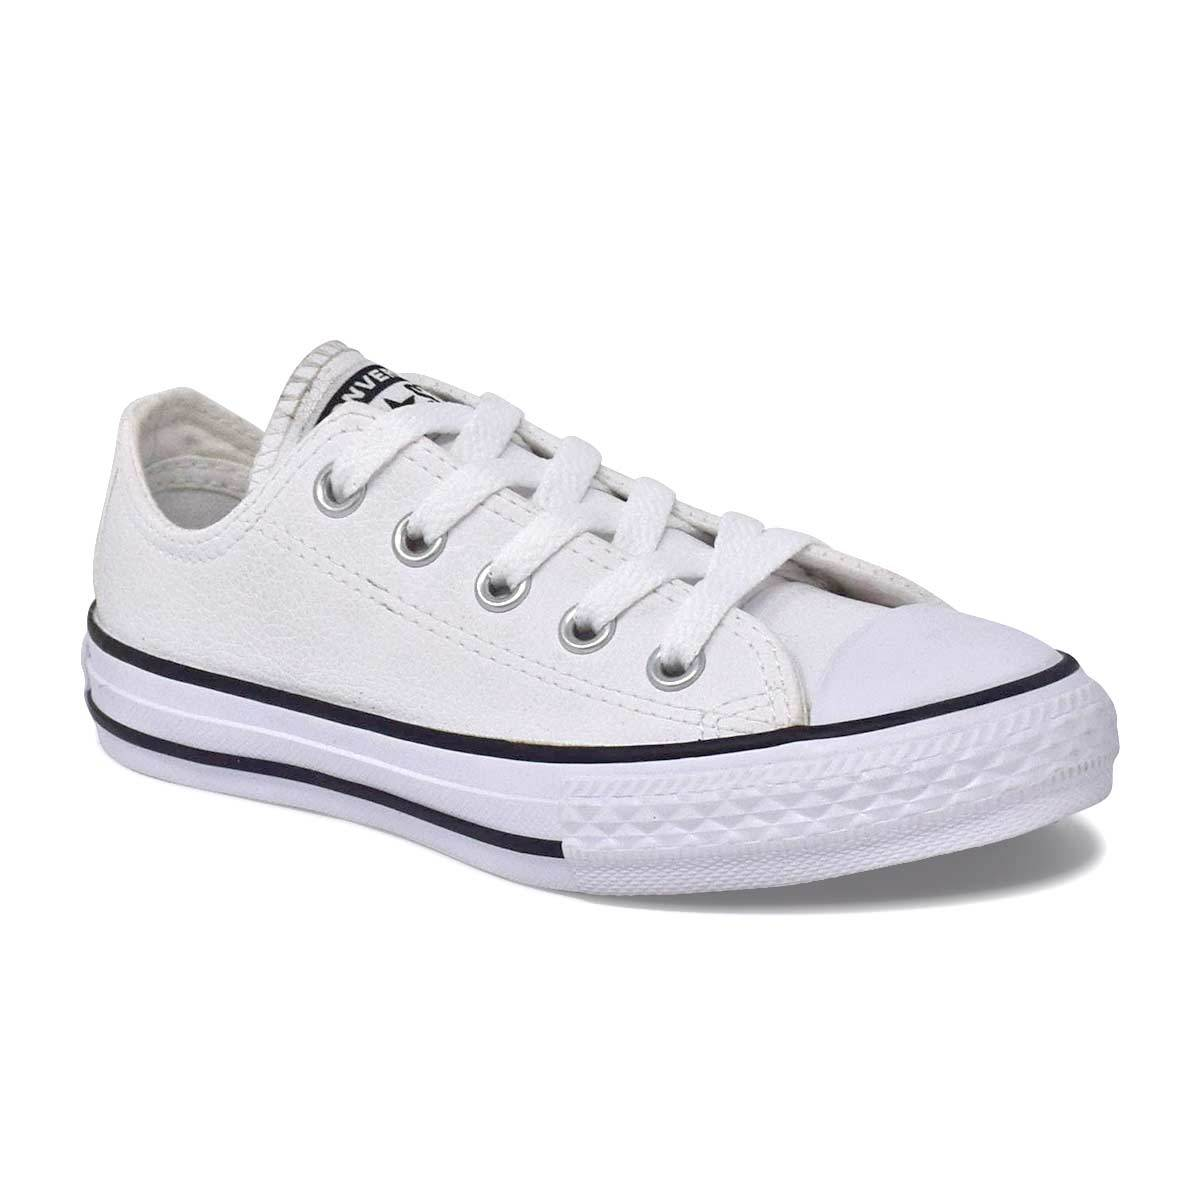 Little Kids Chuck Taylor White Leather